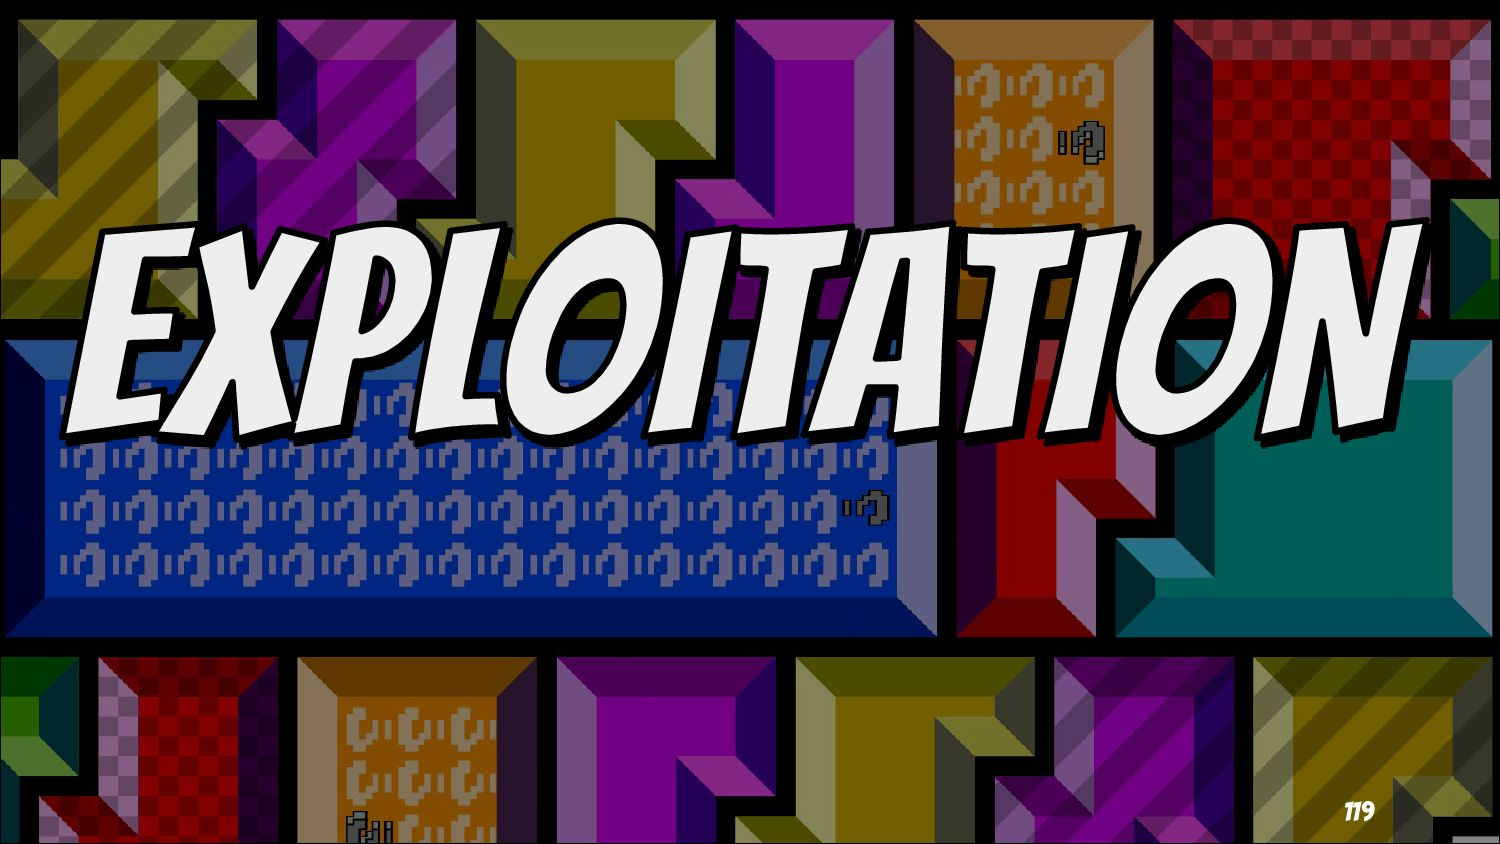 Your first hash collision exploit 119